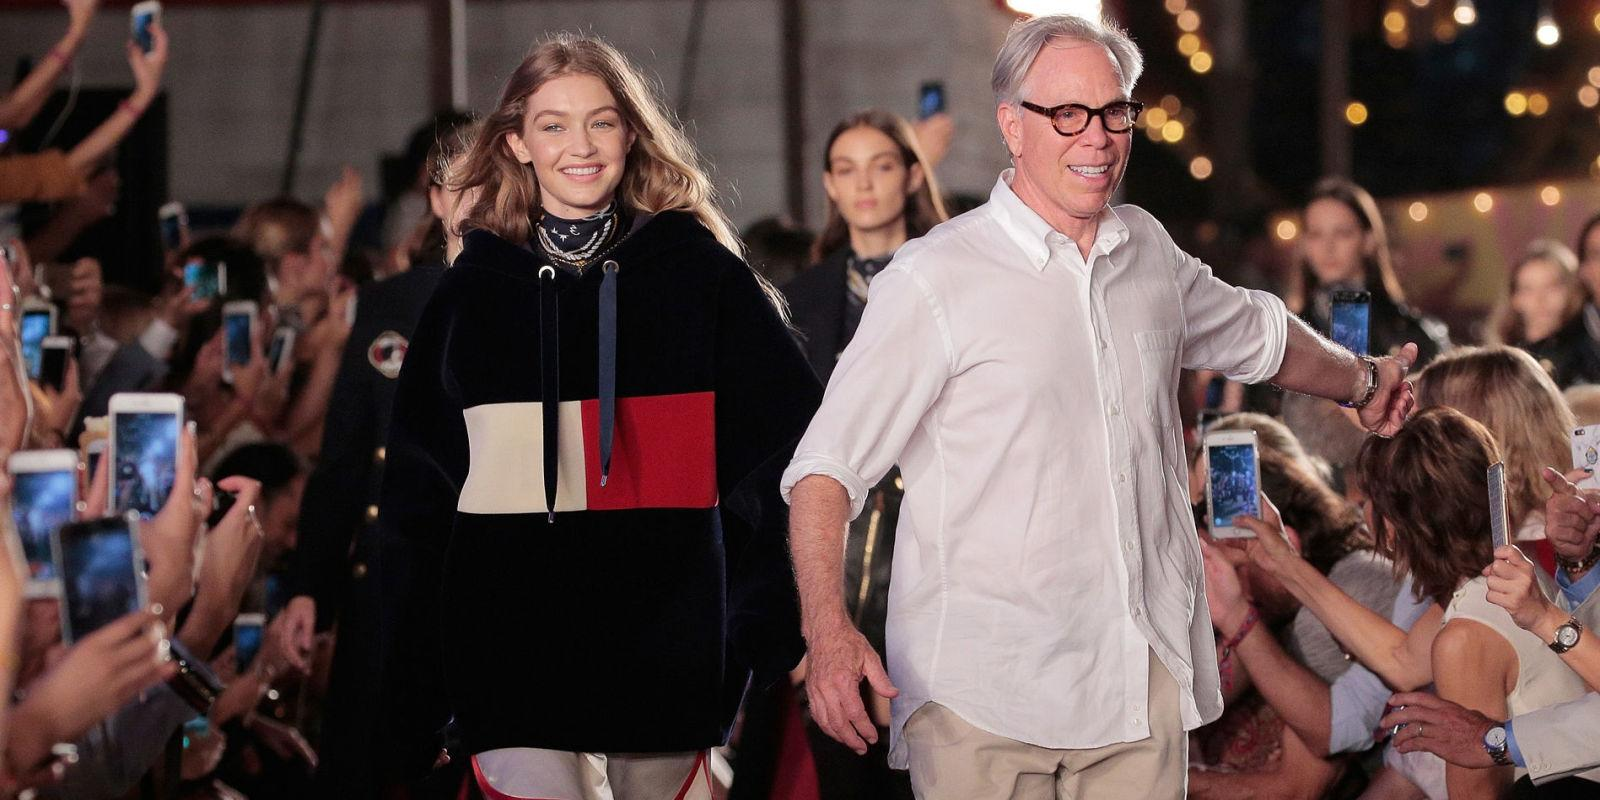 Tommy Hilfiger & Gigi Hadid's Second Fashion Show Won't Be in New York